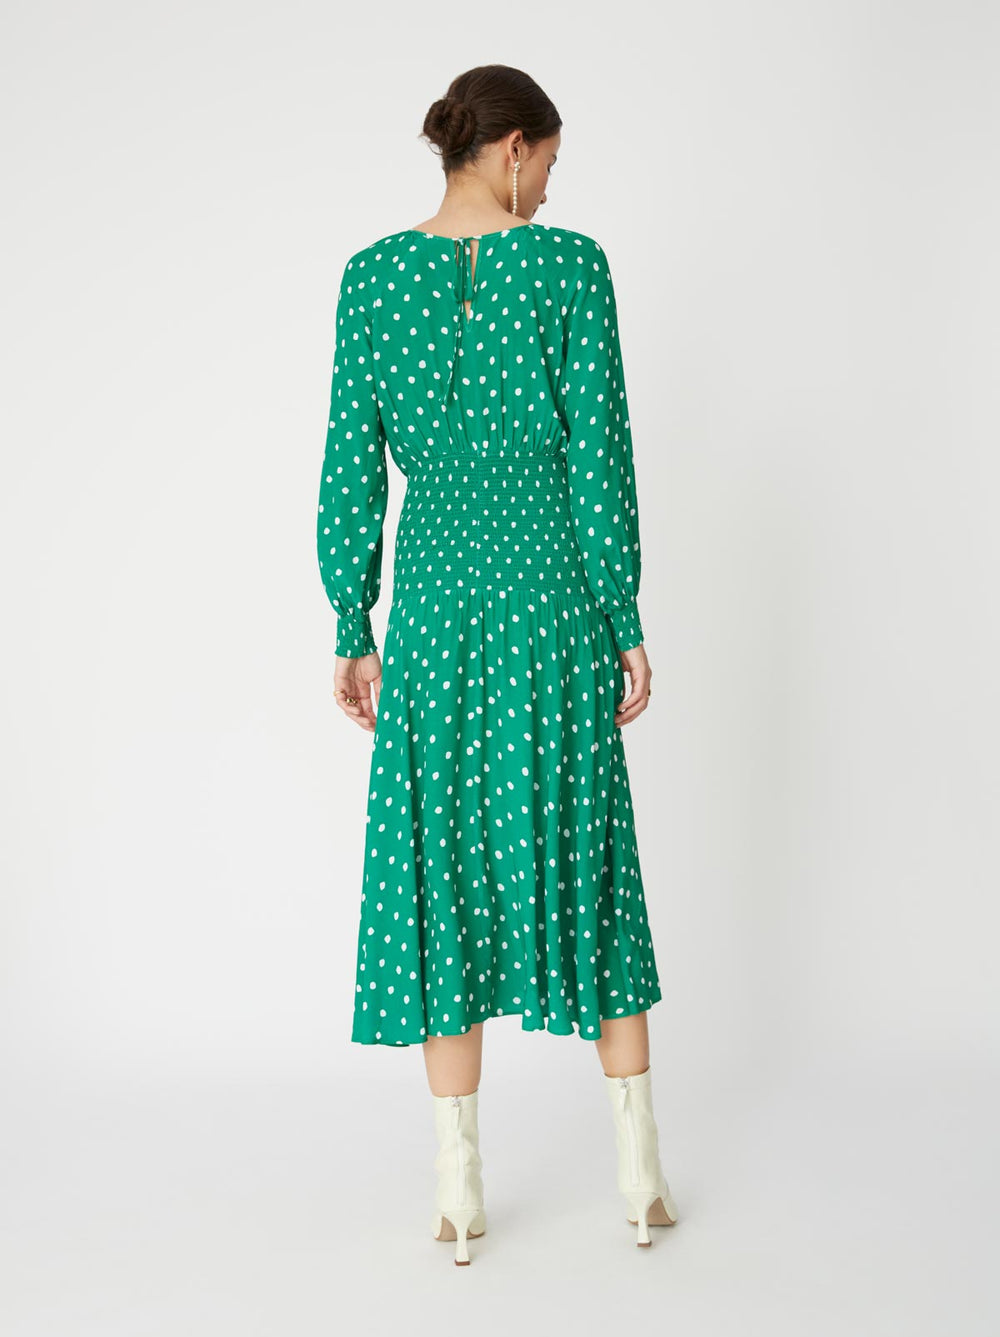 Marianella Green Polka Dot Smocked Dress